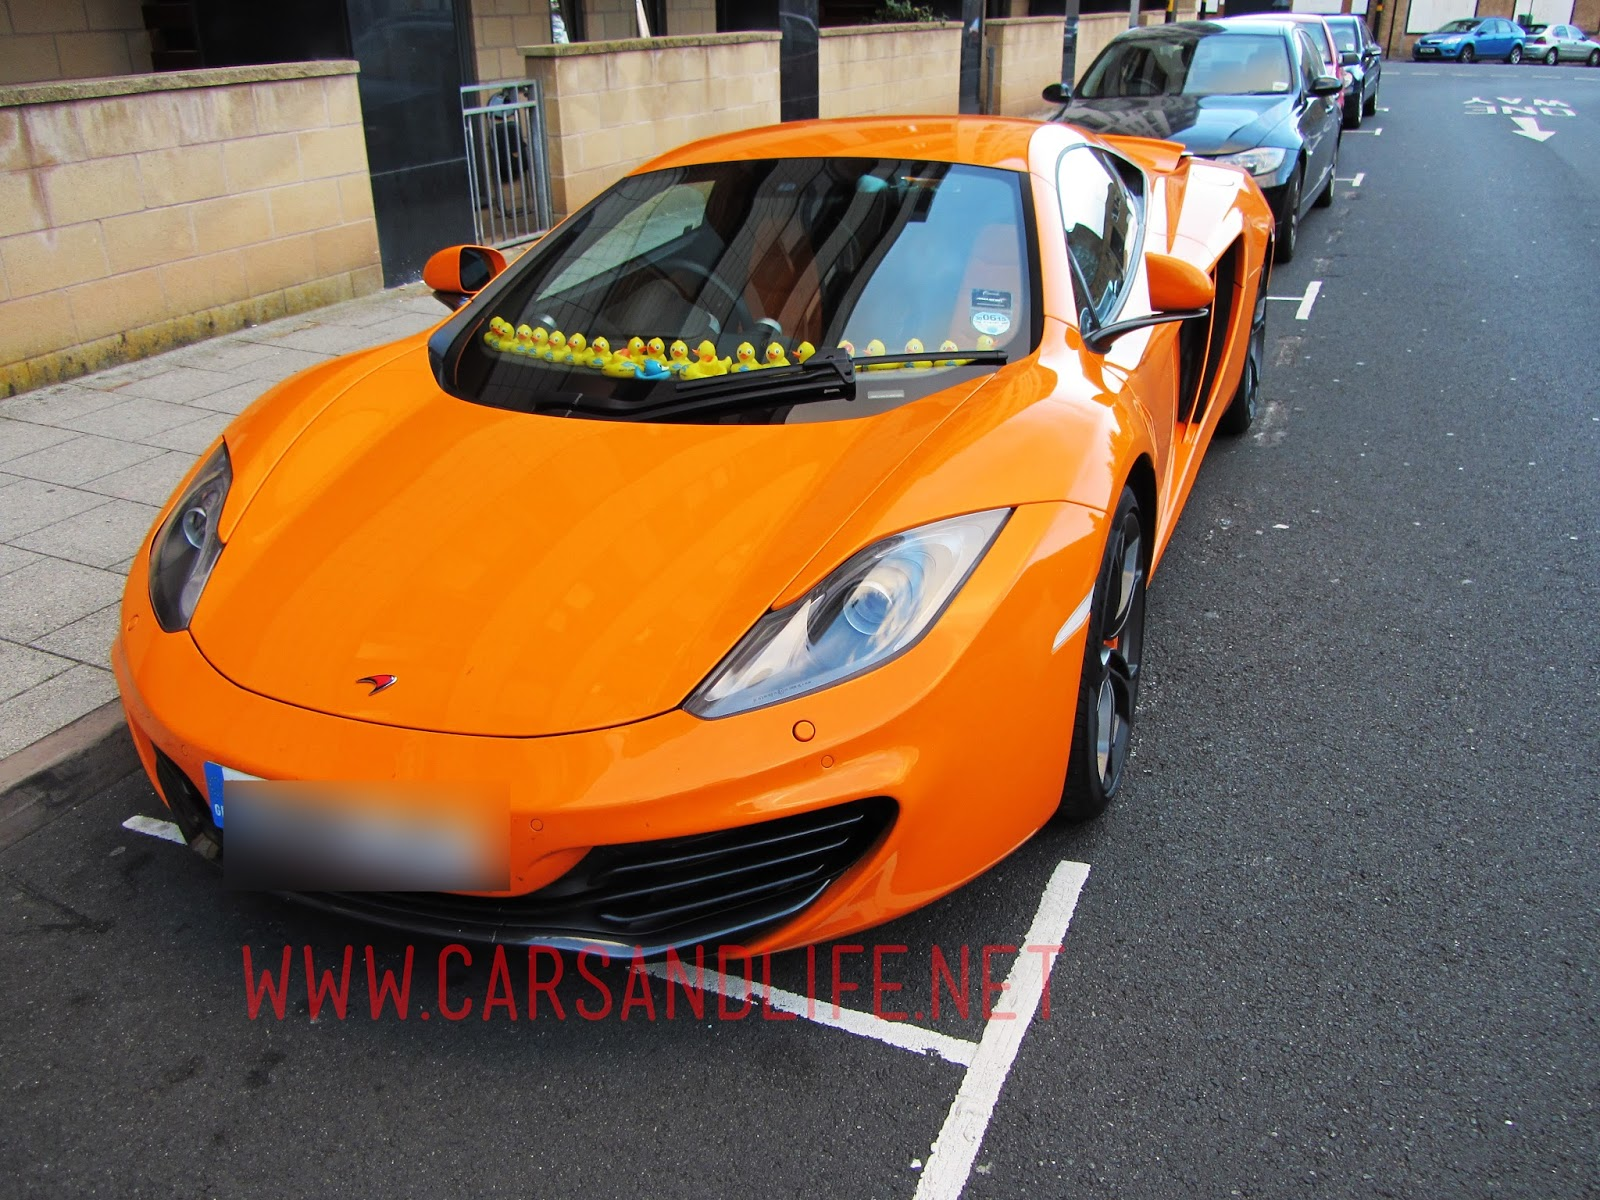 McLaren MP4-12C with Plastic Ducks in Birmingham